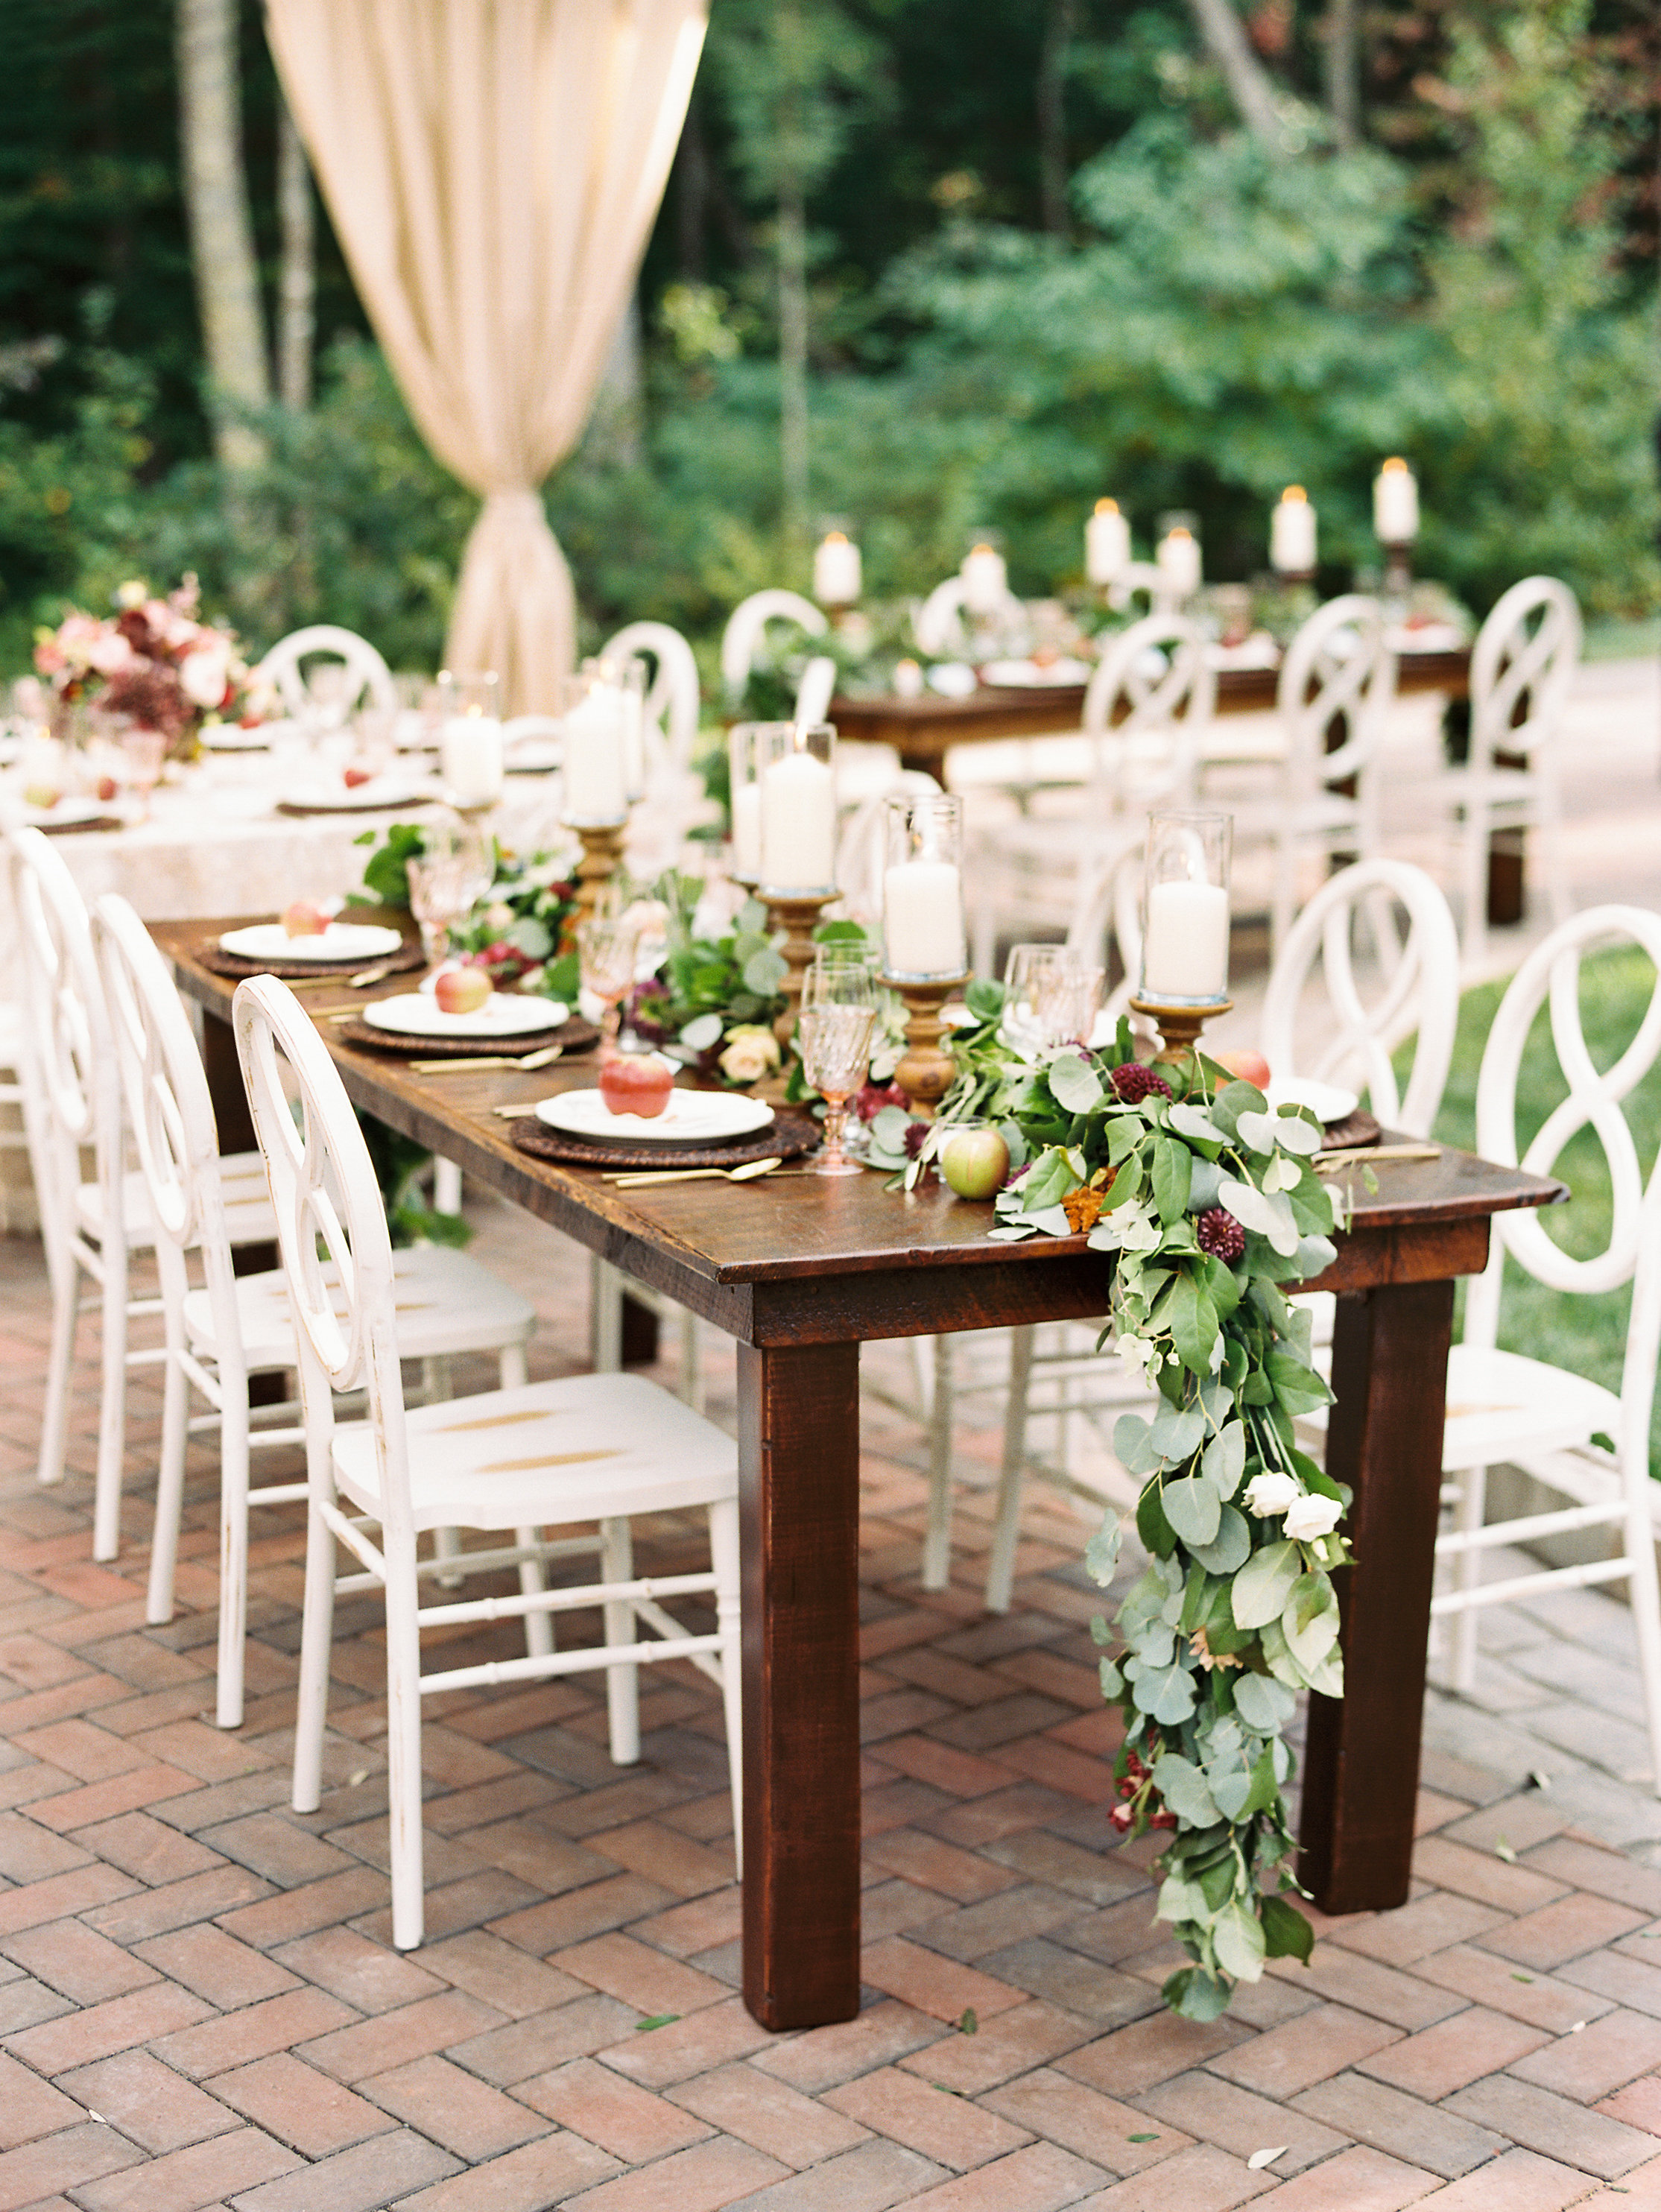 38b4d-ncmountainhomeweddingreceptionfarmtabledetailncmountainhomeweddingreceptionfarmtabledetail.jpg